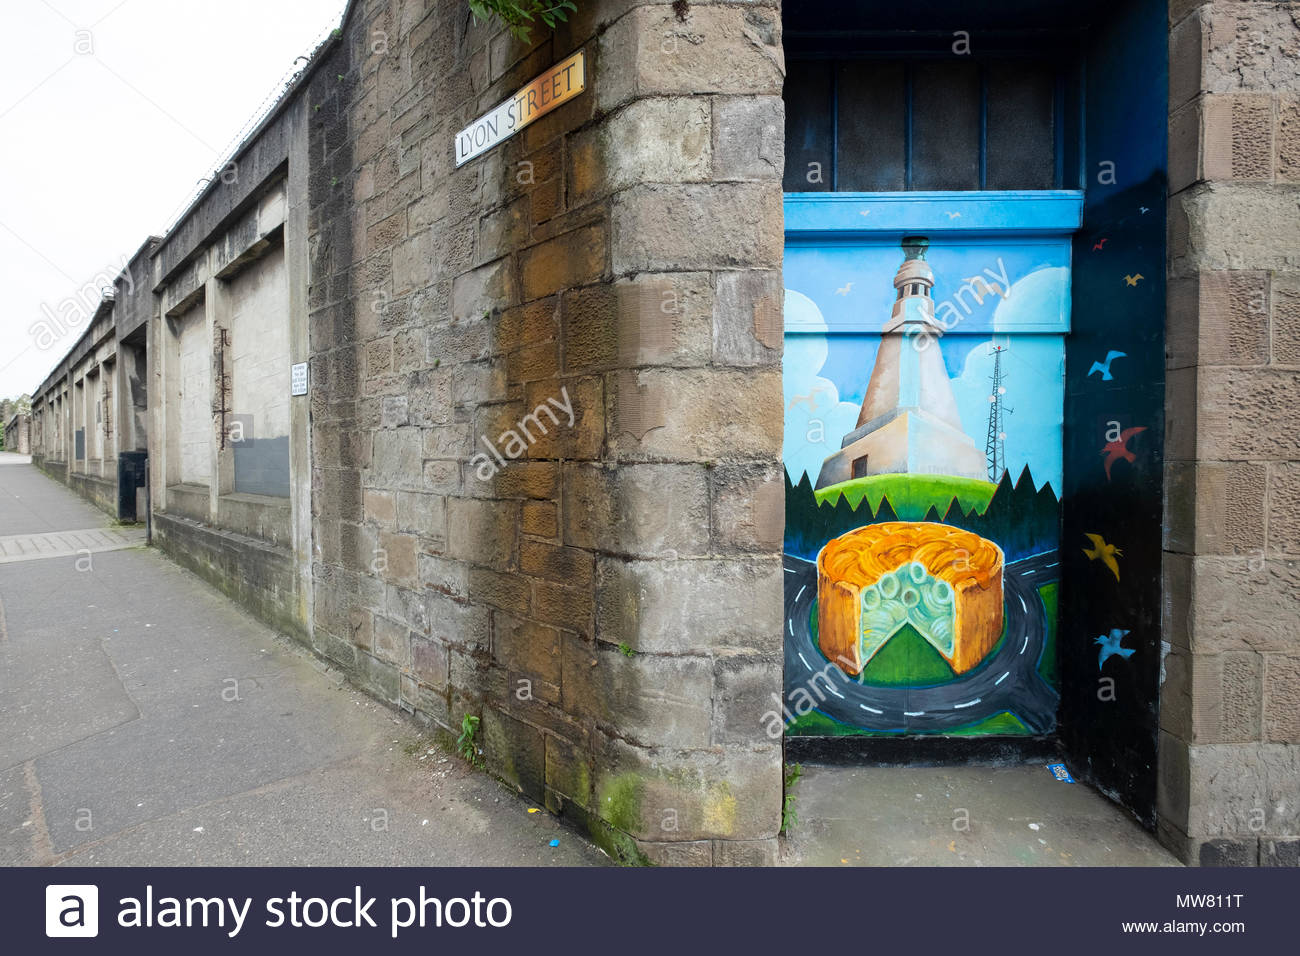 Street art project Openclose Dundee using art on doors in out of the way alleyways and lanes .Tayside Plumbing by Matthew Beakes & Street art project Openclose Dundee using art on doors in out of the ...